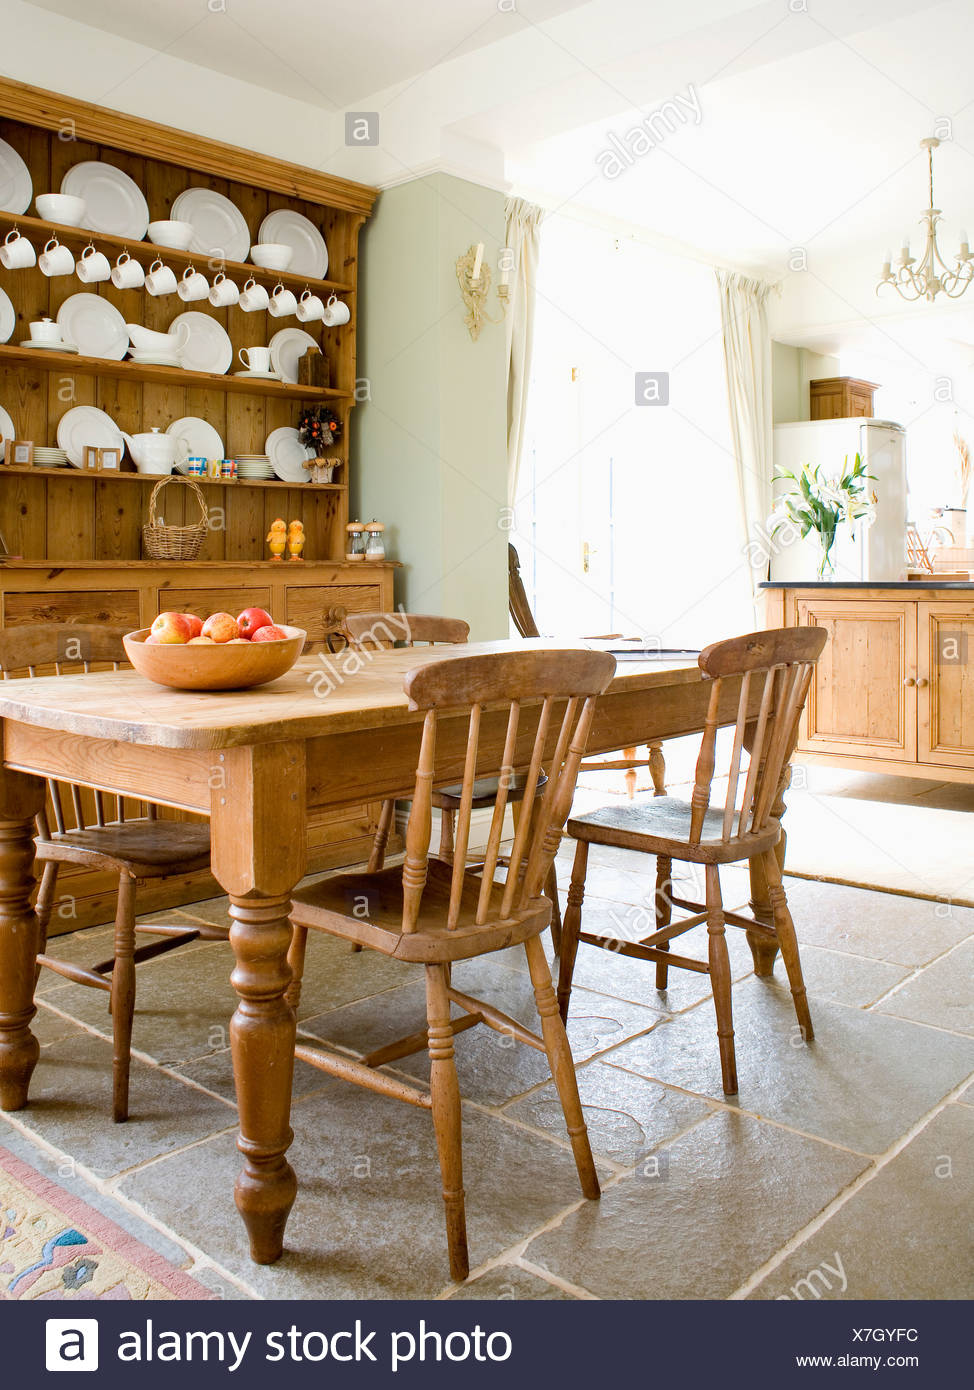 Country Kitchen Chairs Old Pine Table And Chairs In Country Kitchen With Pine Dresser And